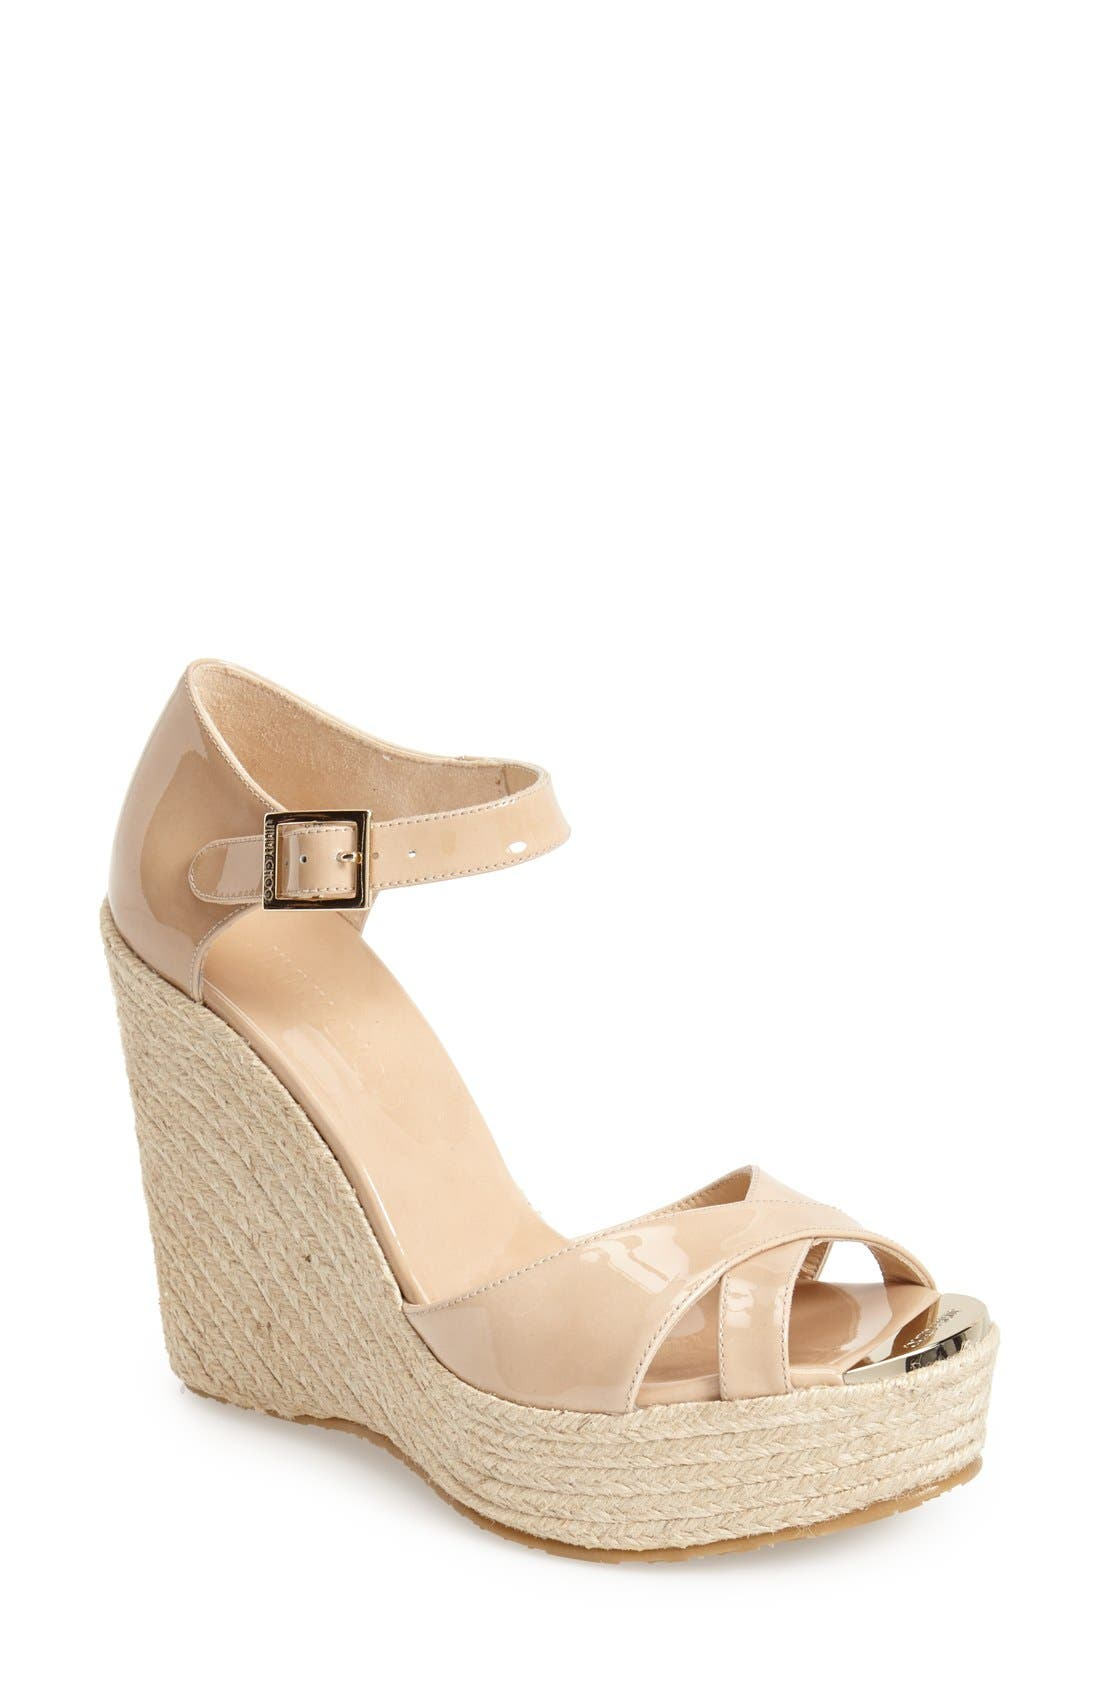 Main Image - Jimmy Choo 'Pallis' Wedge Sandal (Nordstrom Exclusive)